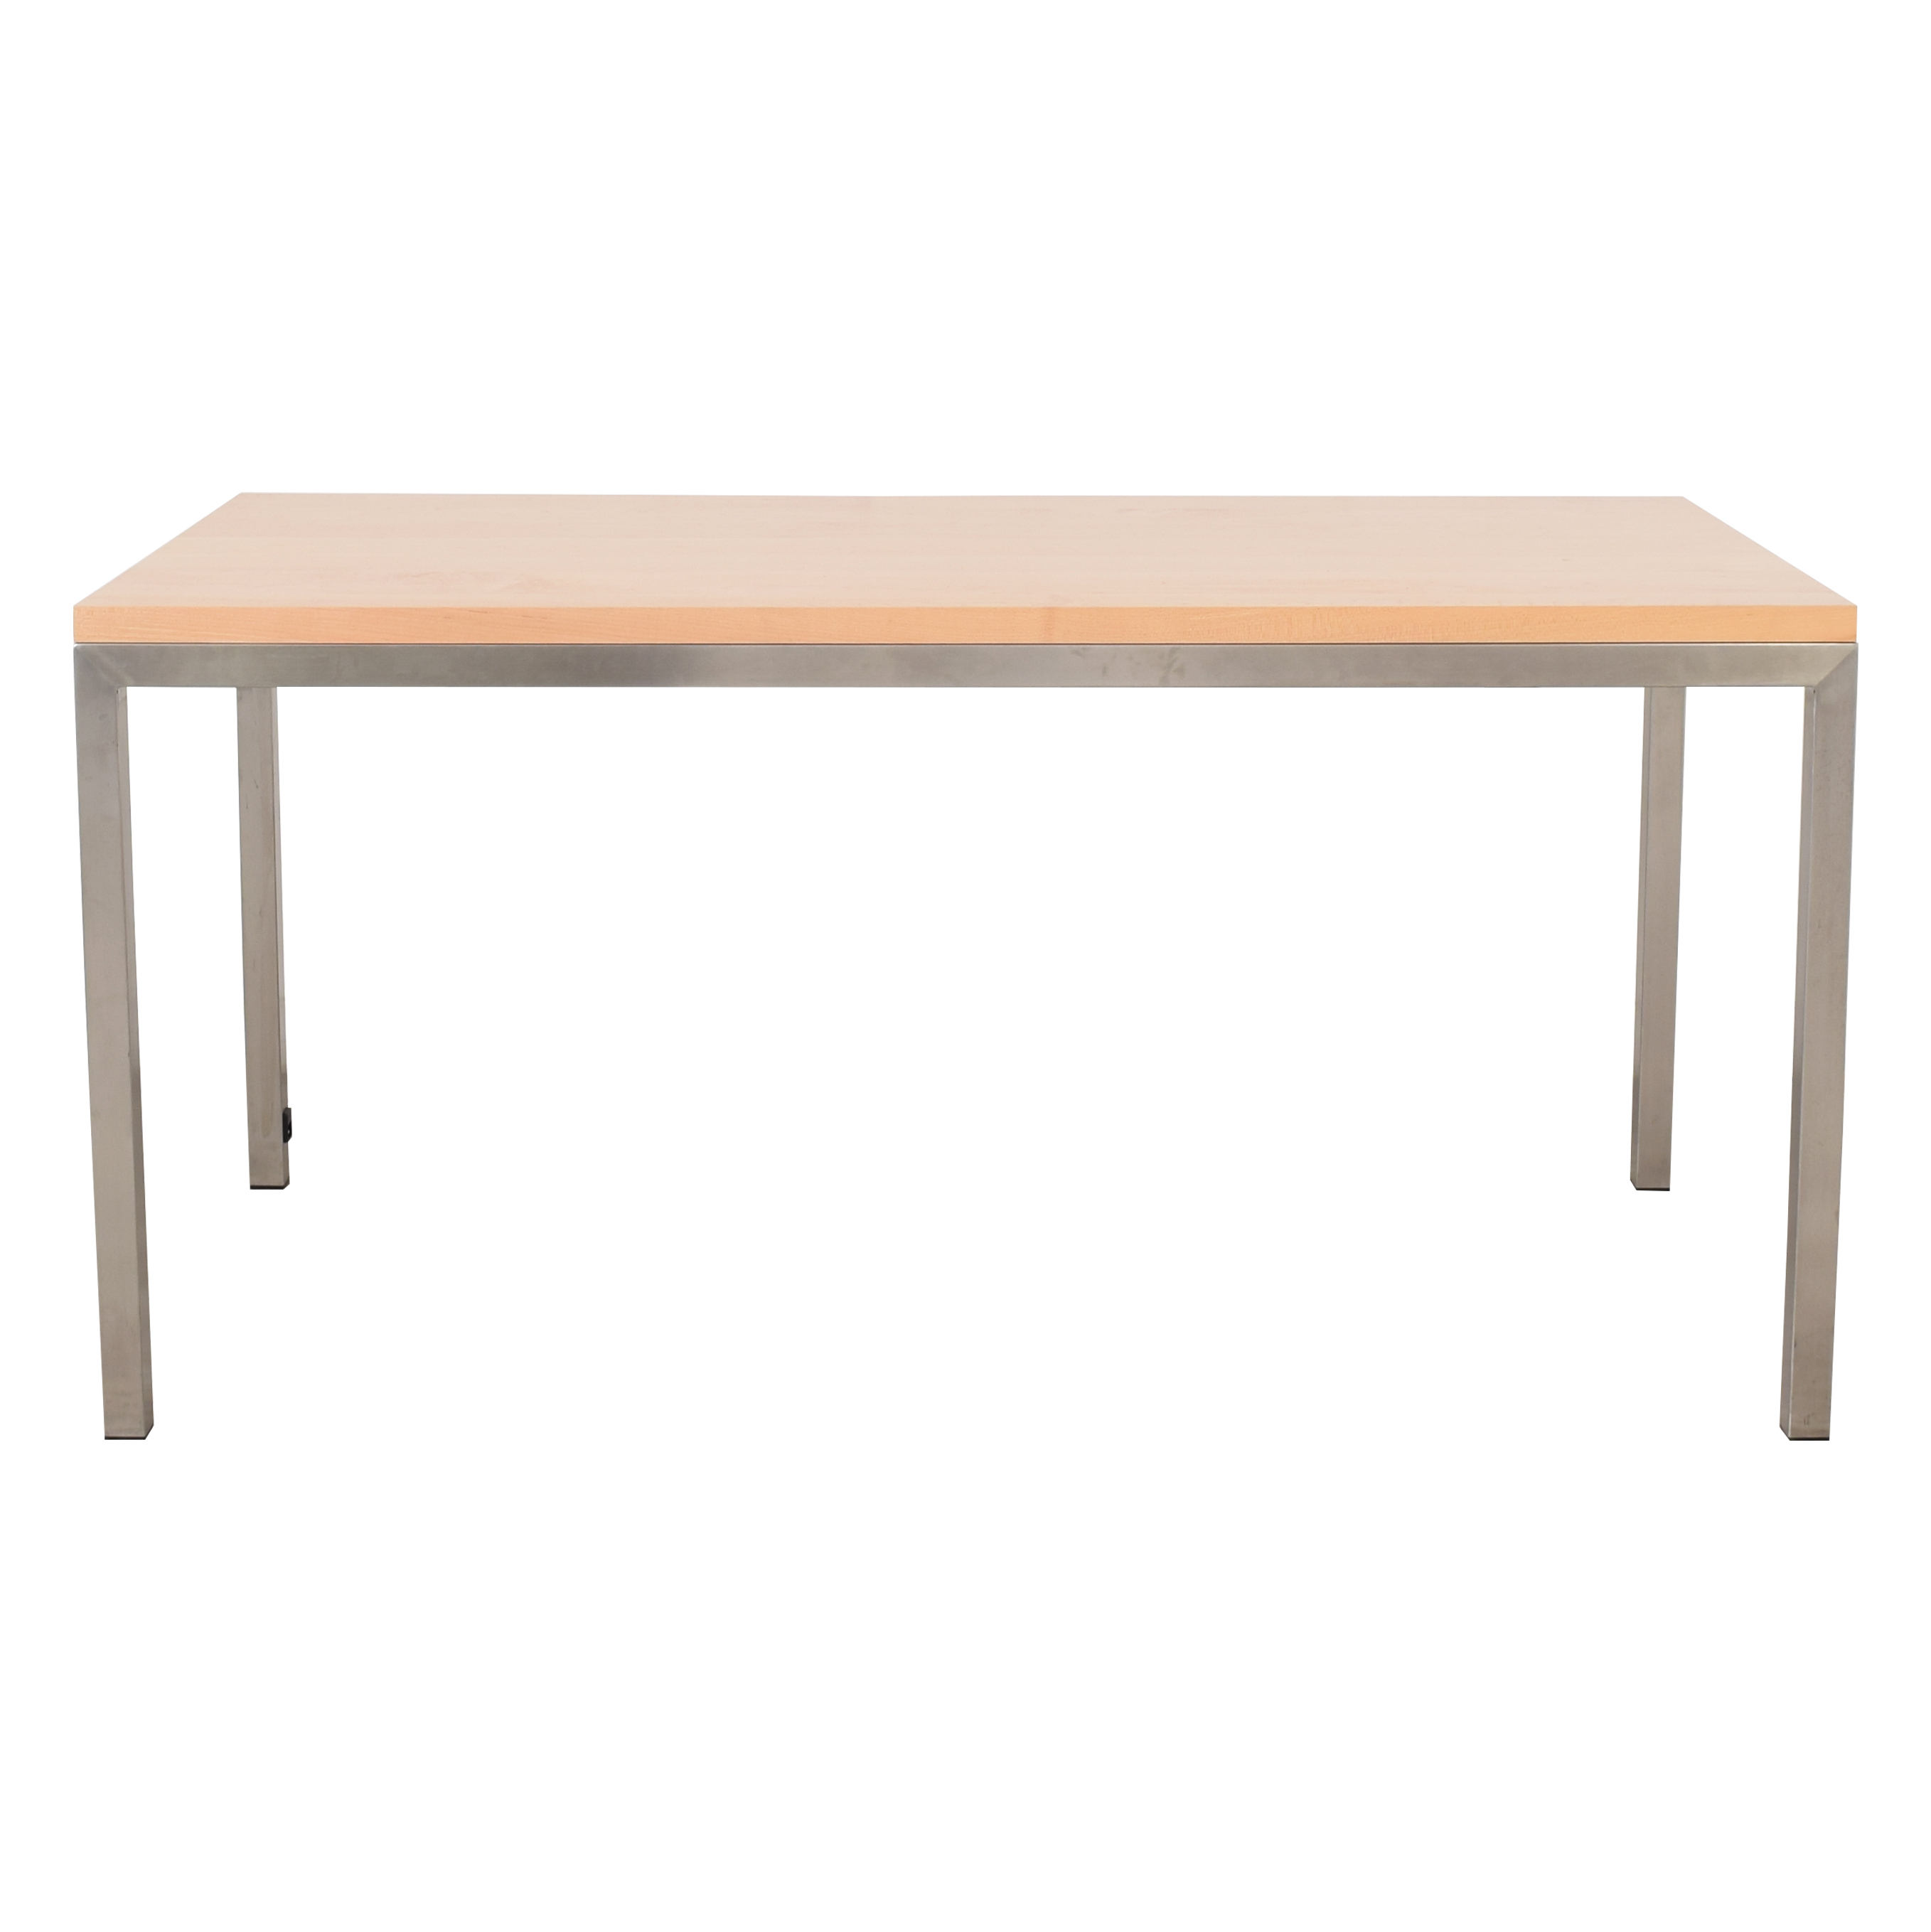 Room & Board Portica Desk / Home Office Desks